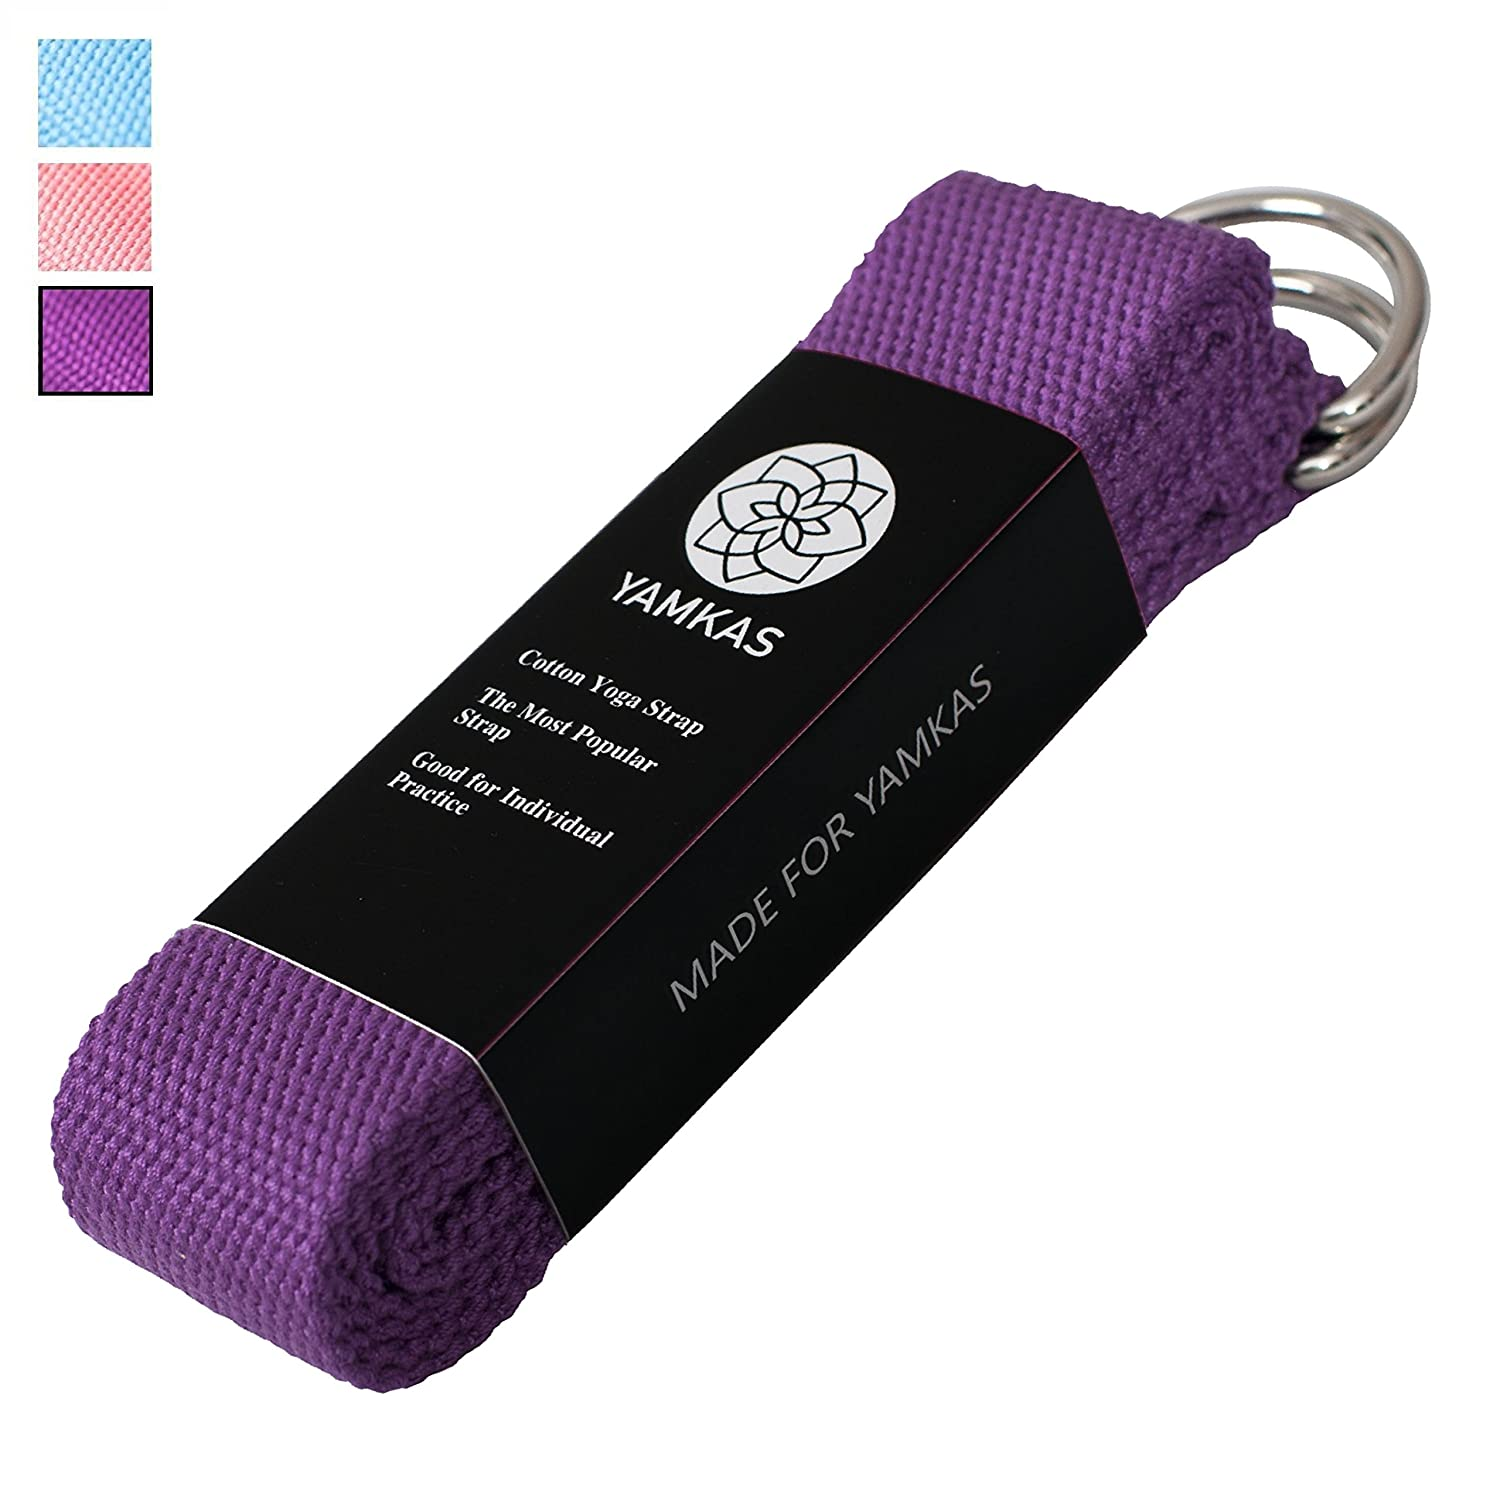 com sports pilates mats amazon dp outdoors grey nike mat the yoga purple ultimate best jl